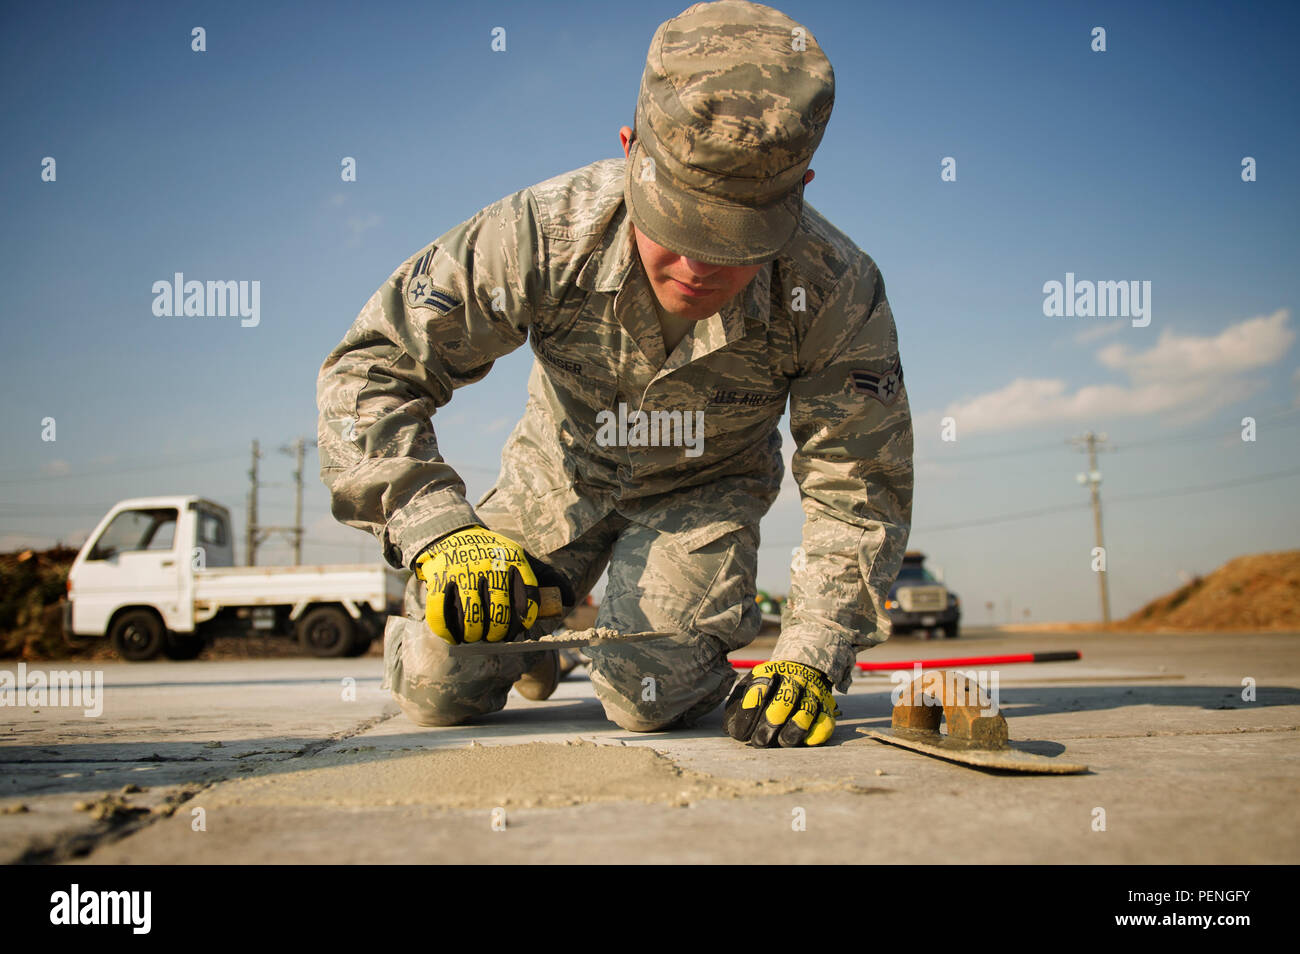 Airman 1st Class Brendan Kinser, 374th Civil Engineer Squadron pavements and equipment apprentice, performs a spall repair on a section of Yokota Air Base, Japan, Jan. 13, 2016. Aptly named 'Dirt Boys,' 374 CES pavement and equipment Airmen perform spall repairs as part of their preventative maintenance practices to ensure Yokota's airfield is free of cracks and tears. (U.S. Air Force photo by Airman 1st Class Delano Scott/Released) - Stock Image